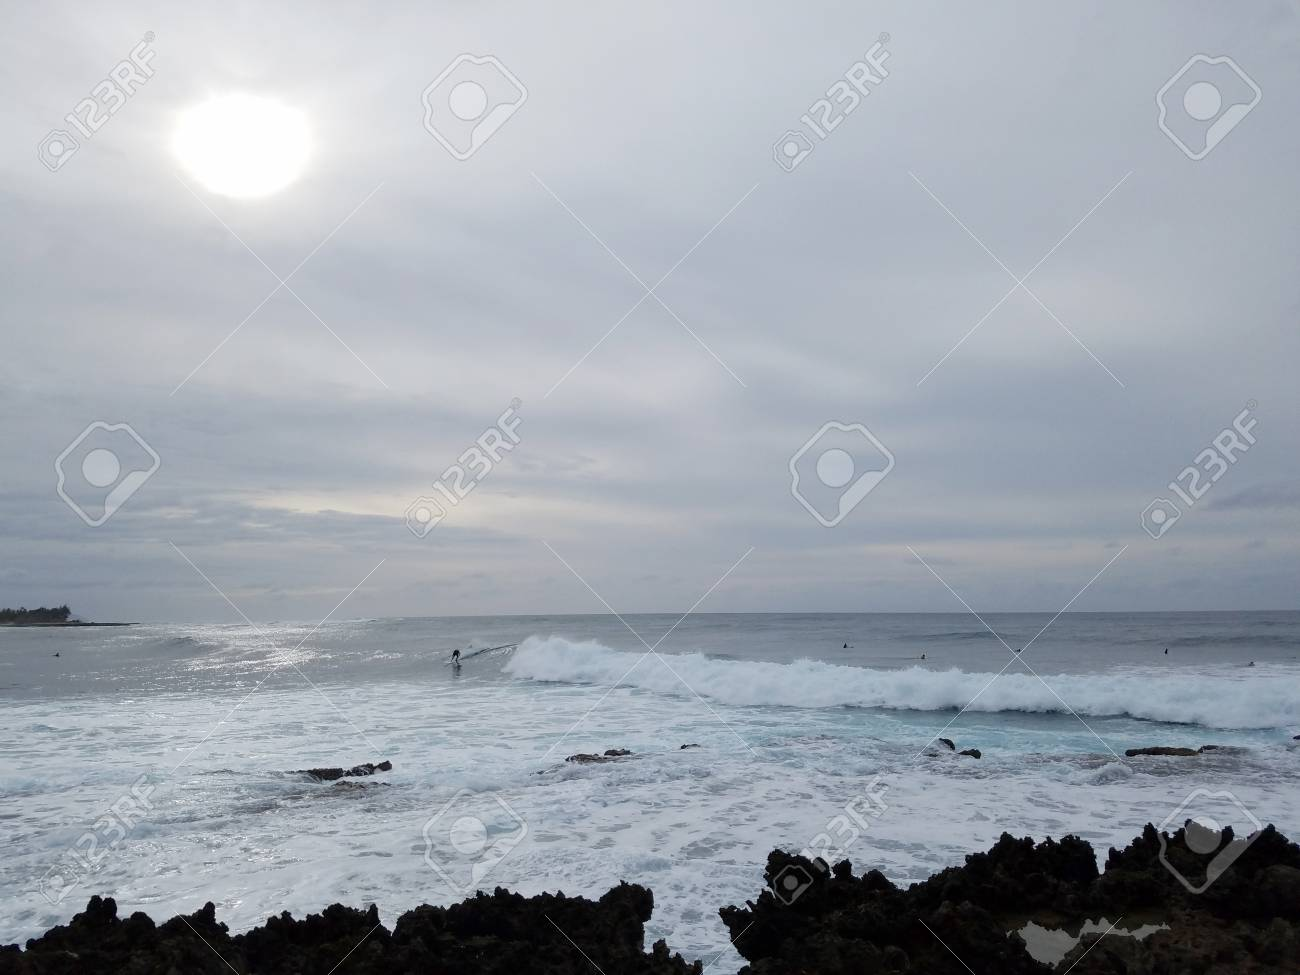 Waves Roll Into Shore With People Surfing With Clouds And Sun